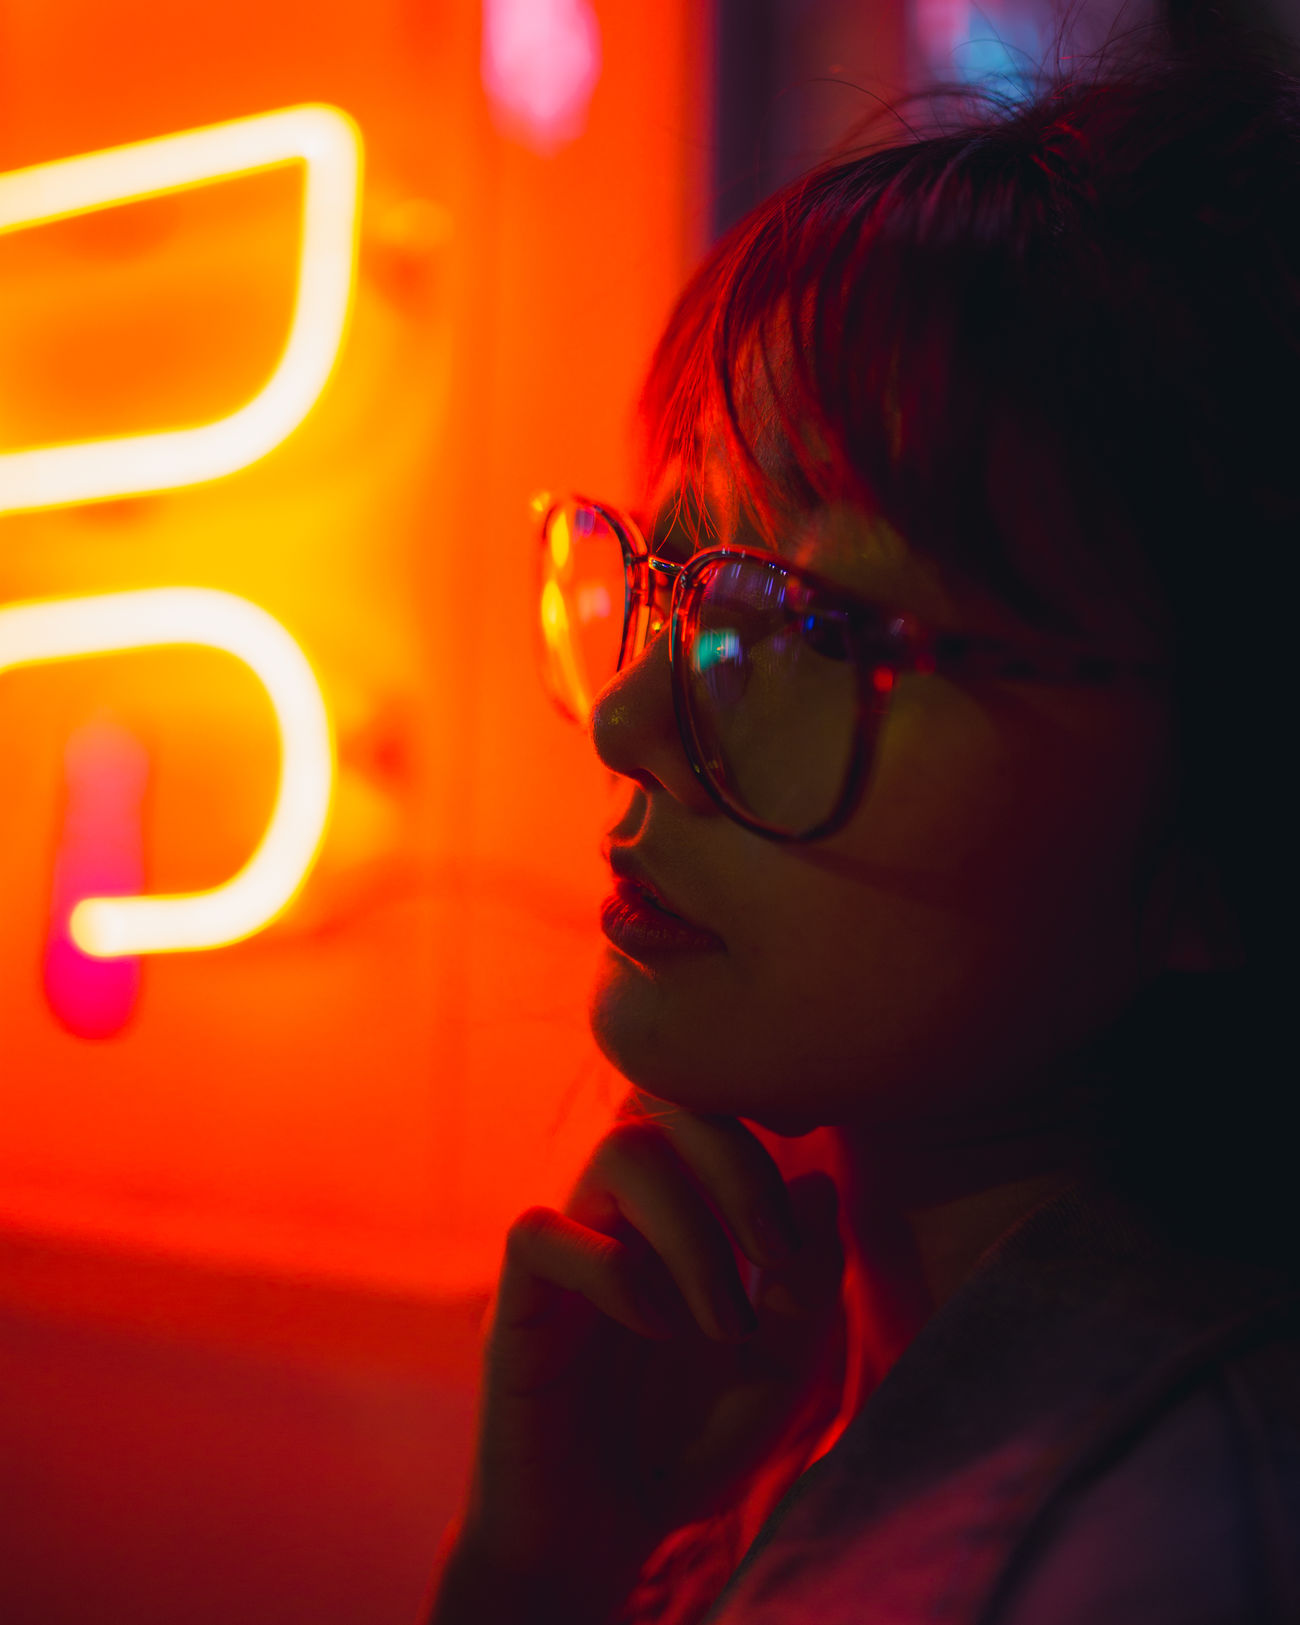 Finders' Keepers Neon Lights Neon Fire Light Night Lights Beautiful People Portrait Of A Girl Portrait Of A Woman Portrait Photography Real People Light Collection Orange Red Technology Close-up Eyeglasses